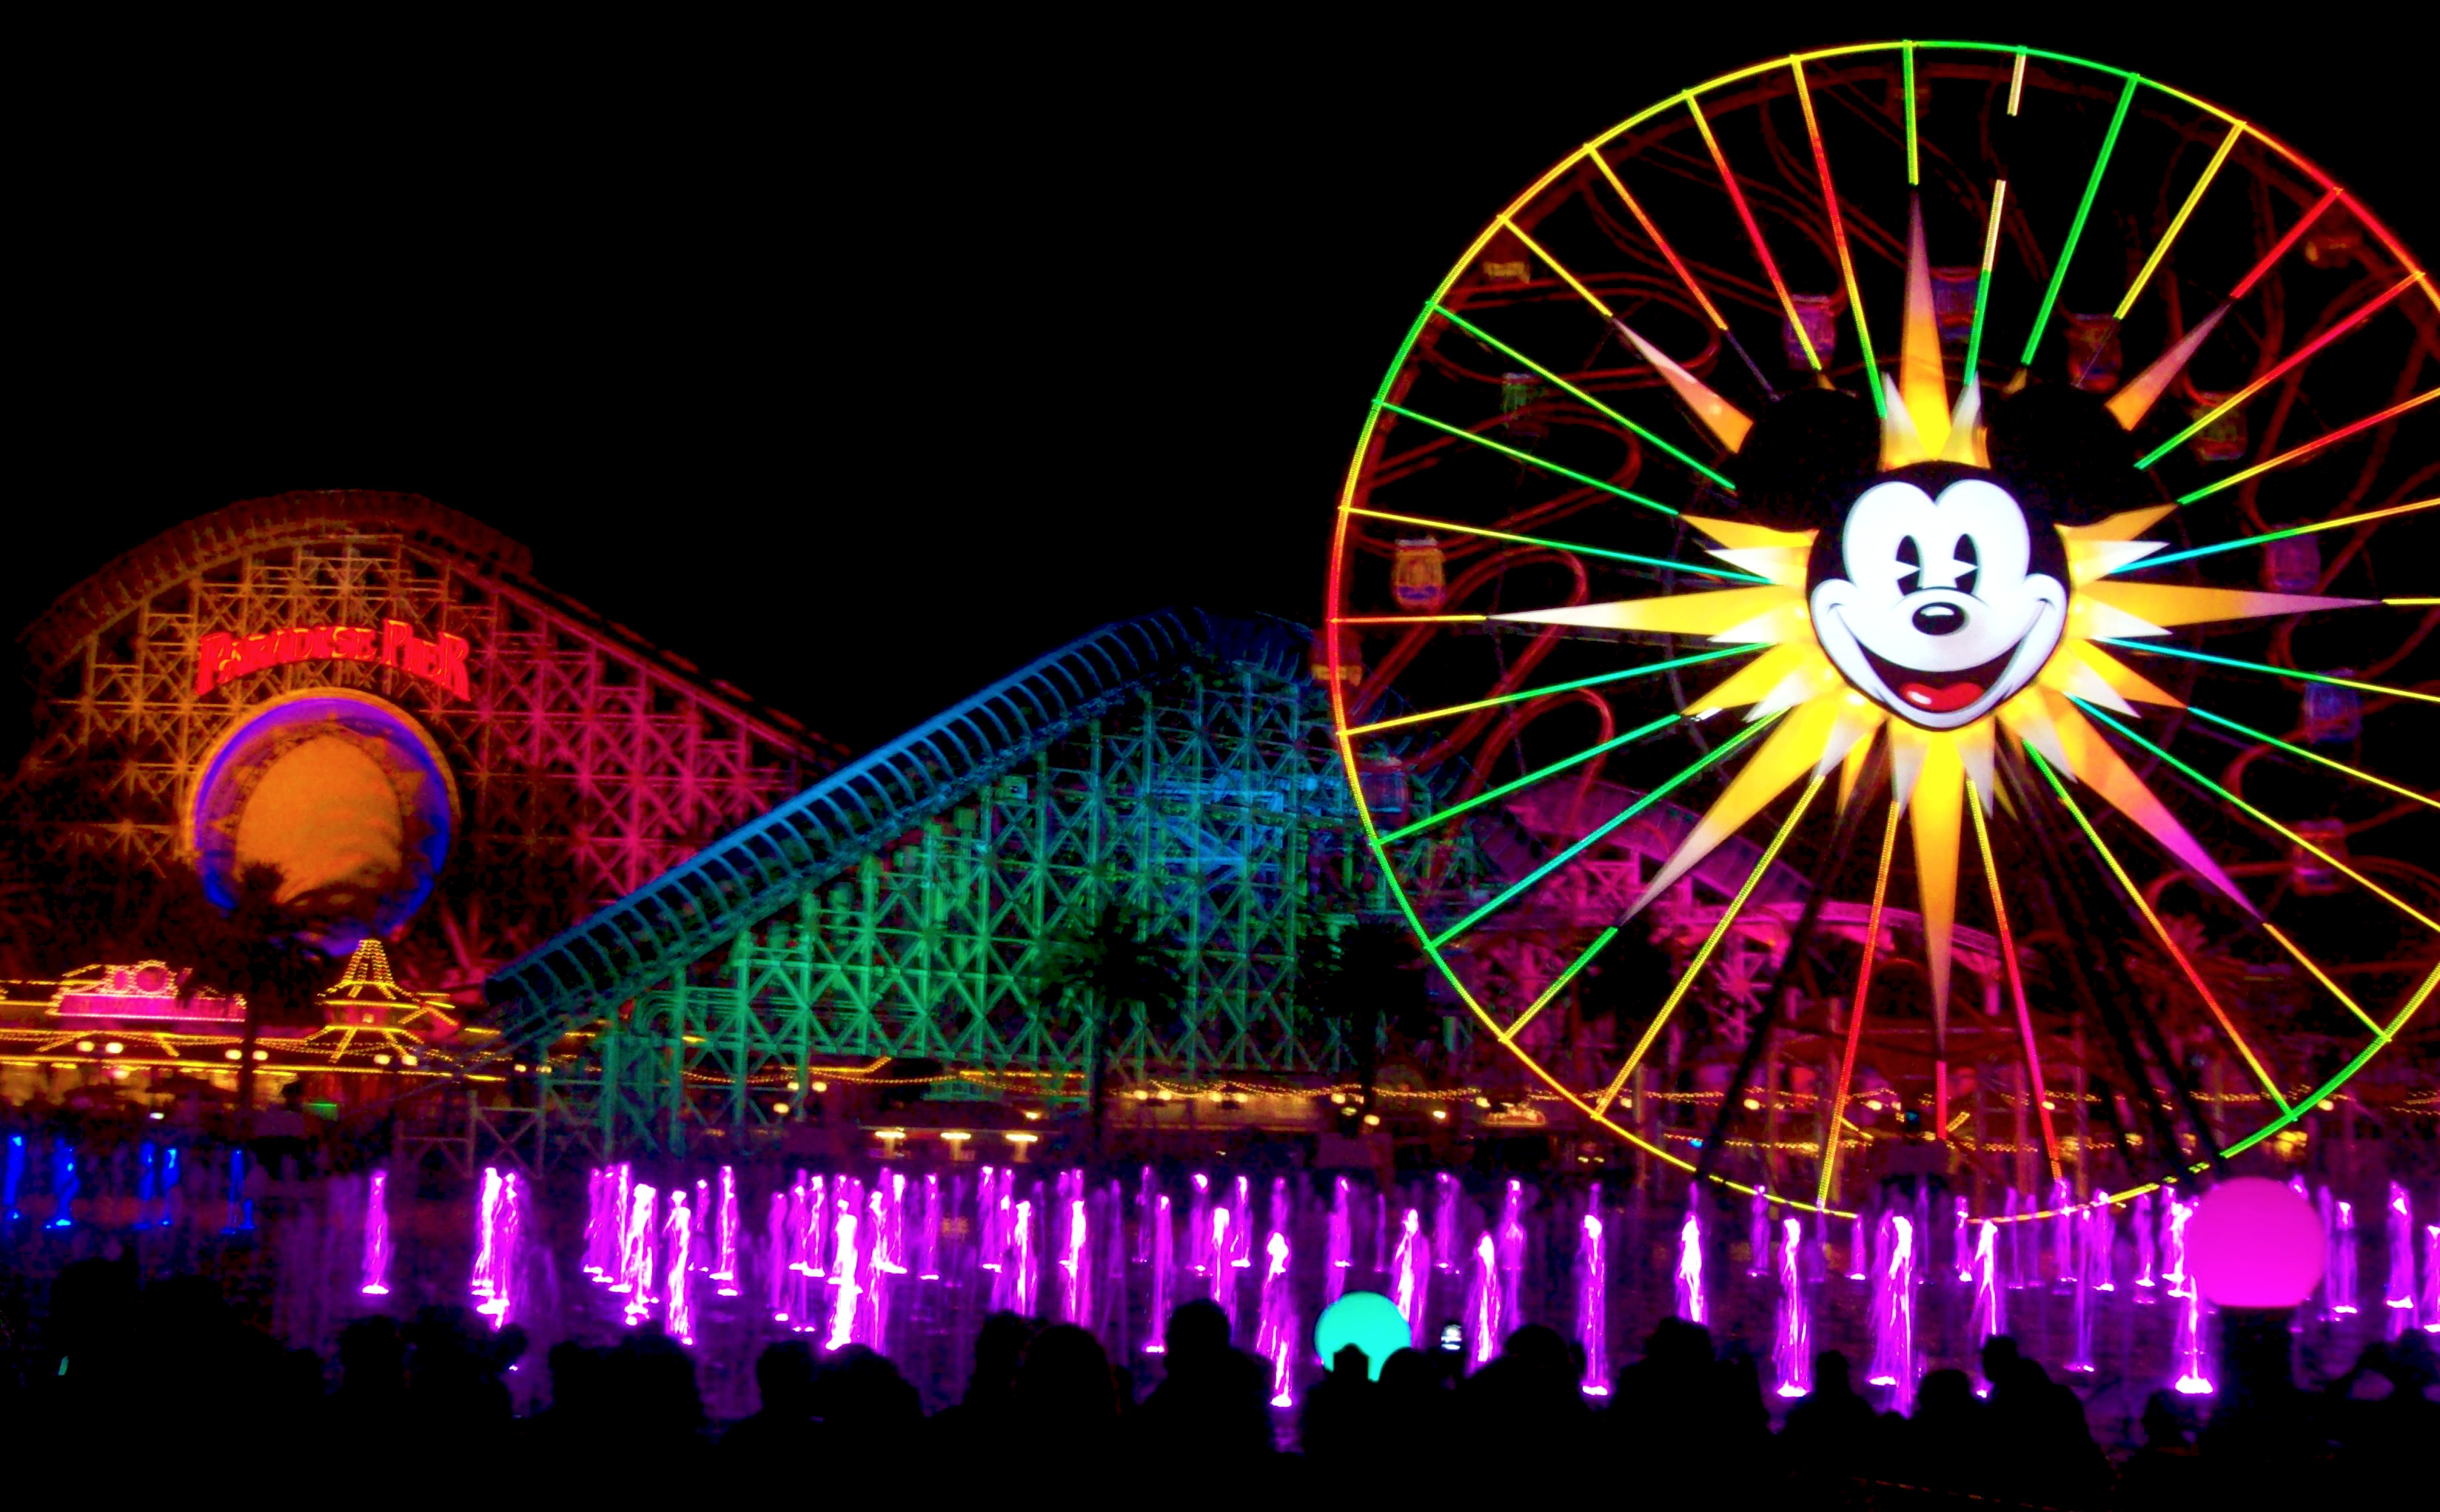 World of Color HD desktop wallpaper Widescreen High Definition